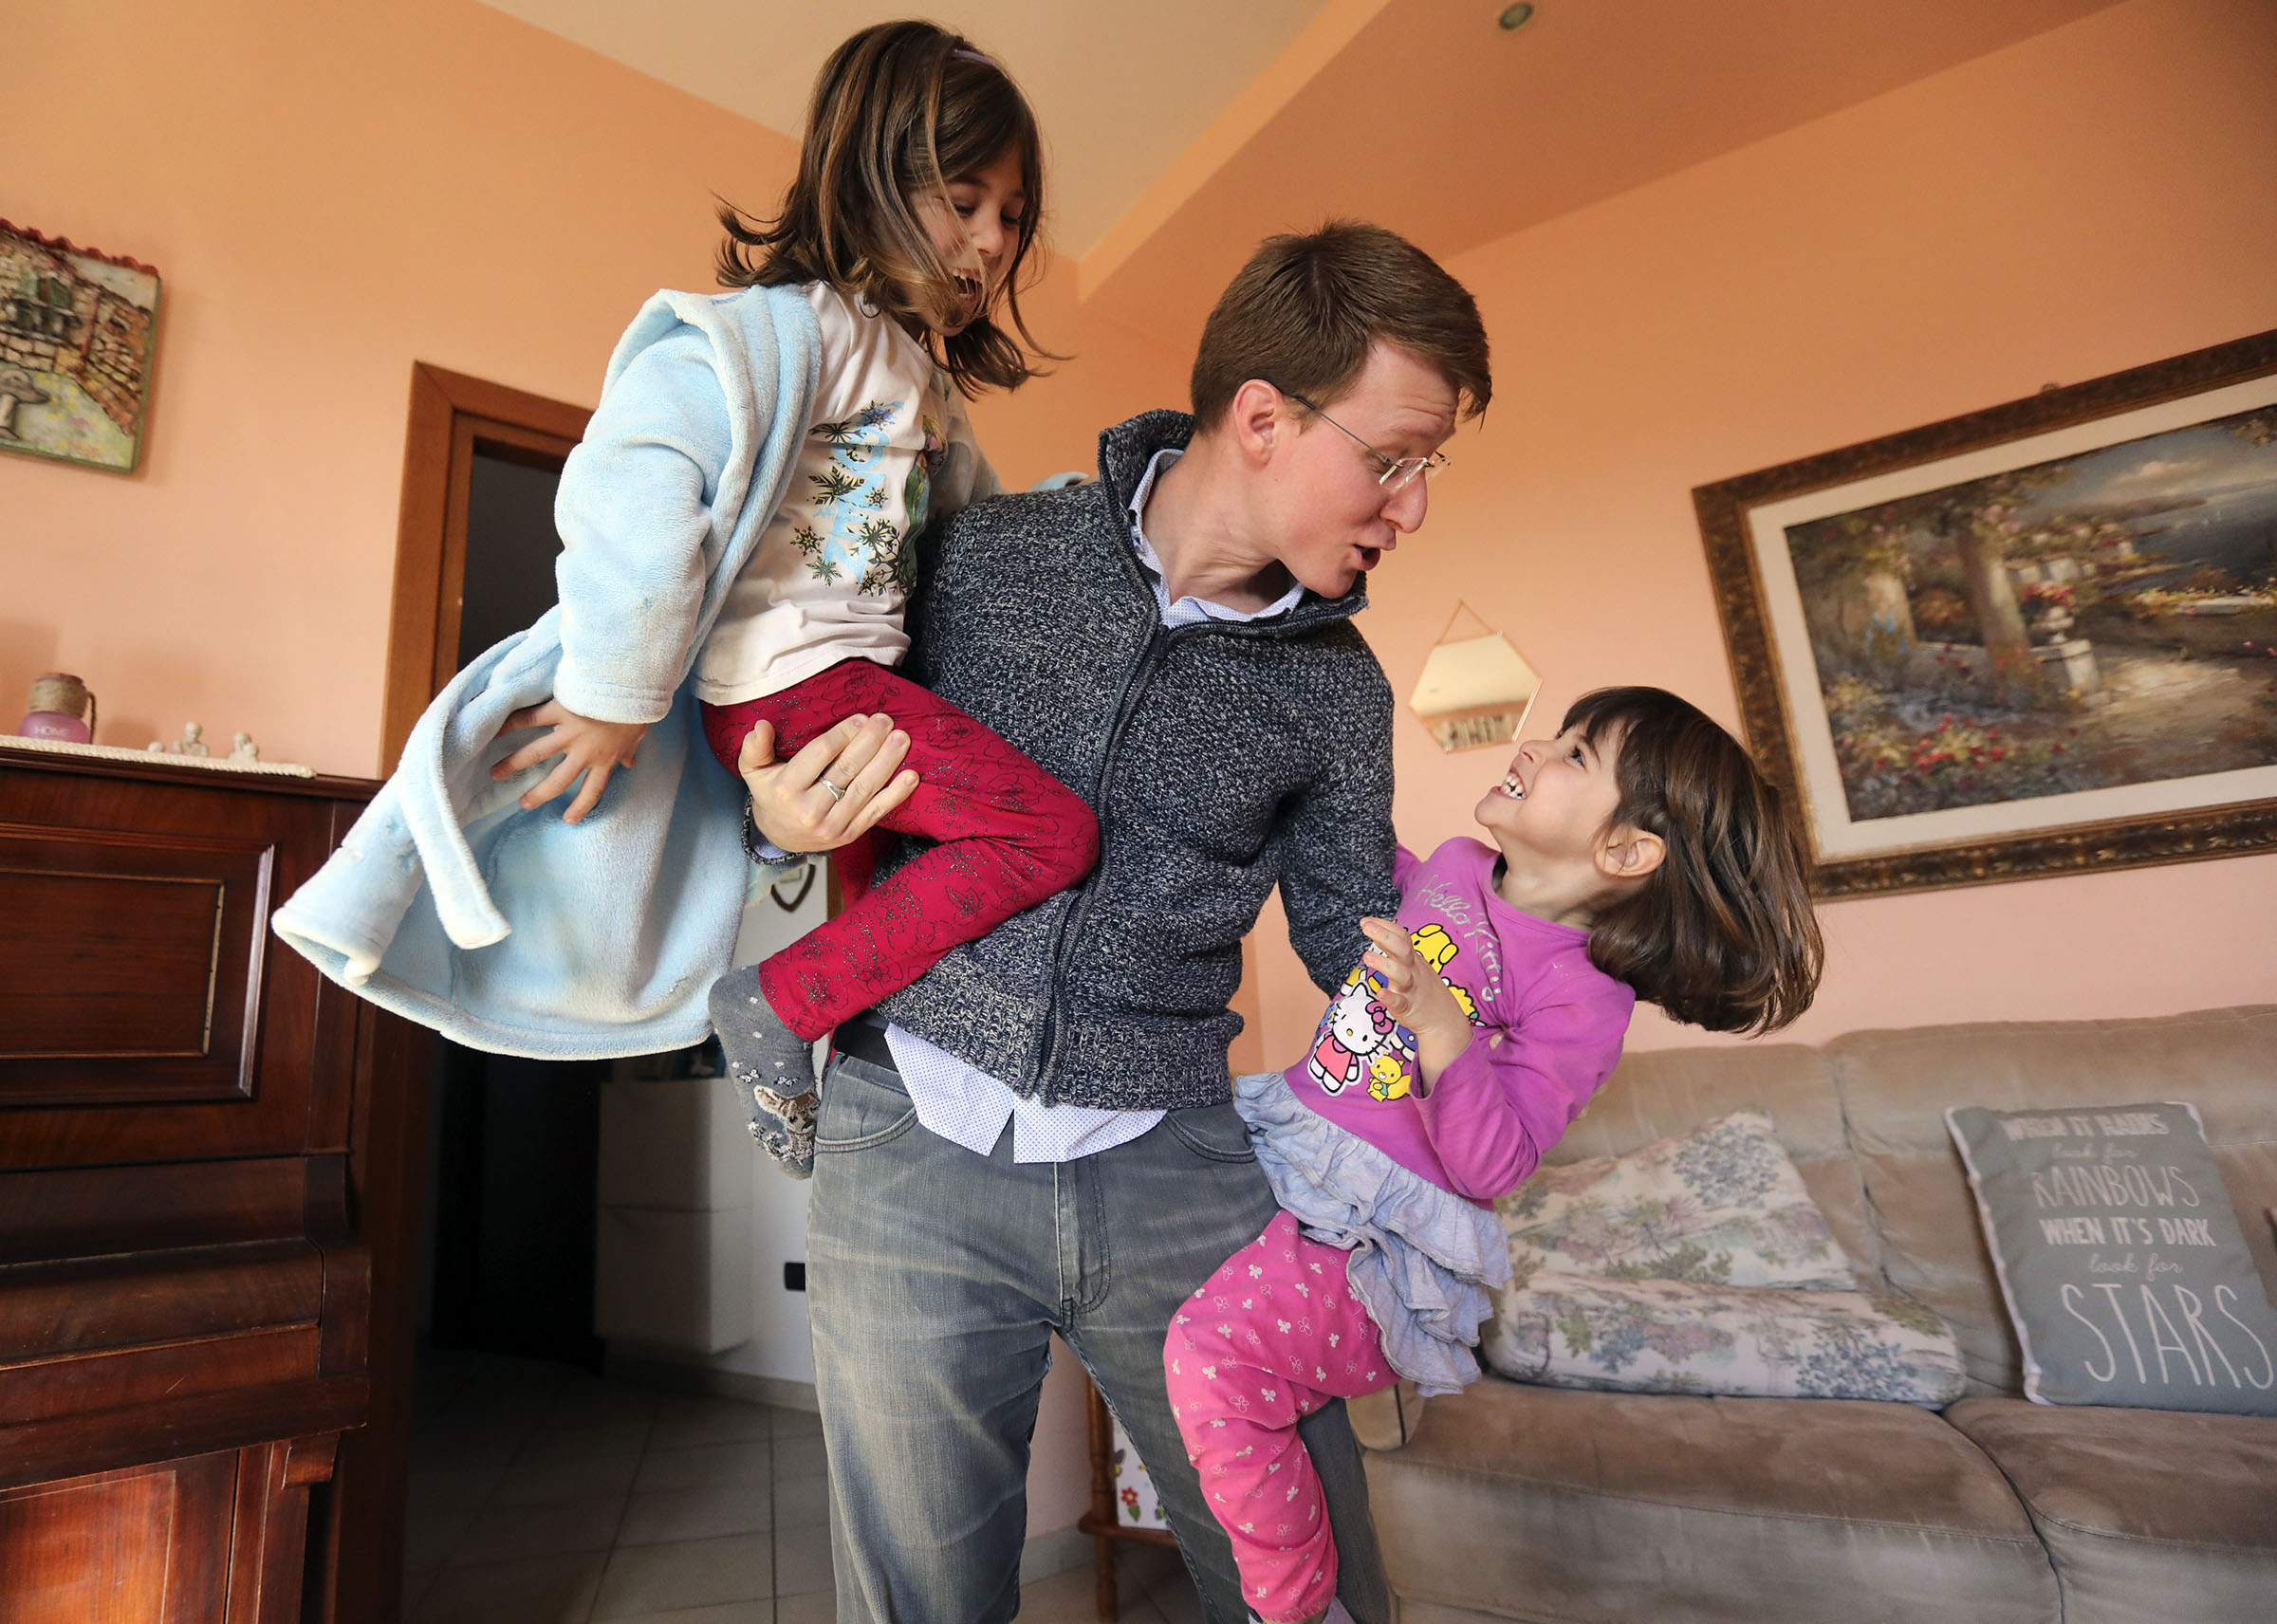 Daniele Salerno plays with his daughters Emma, left, and Alice, right, at home in Rome, Italy, on Sunday morning, Nov. 18, 2018.